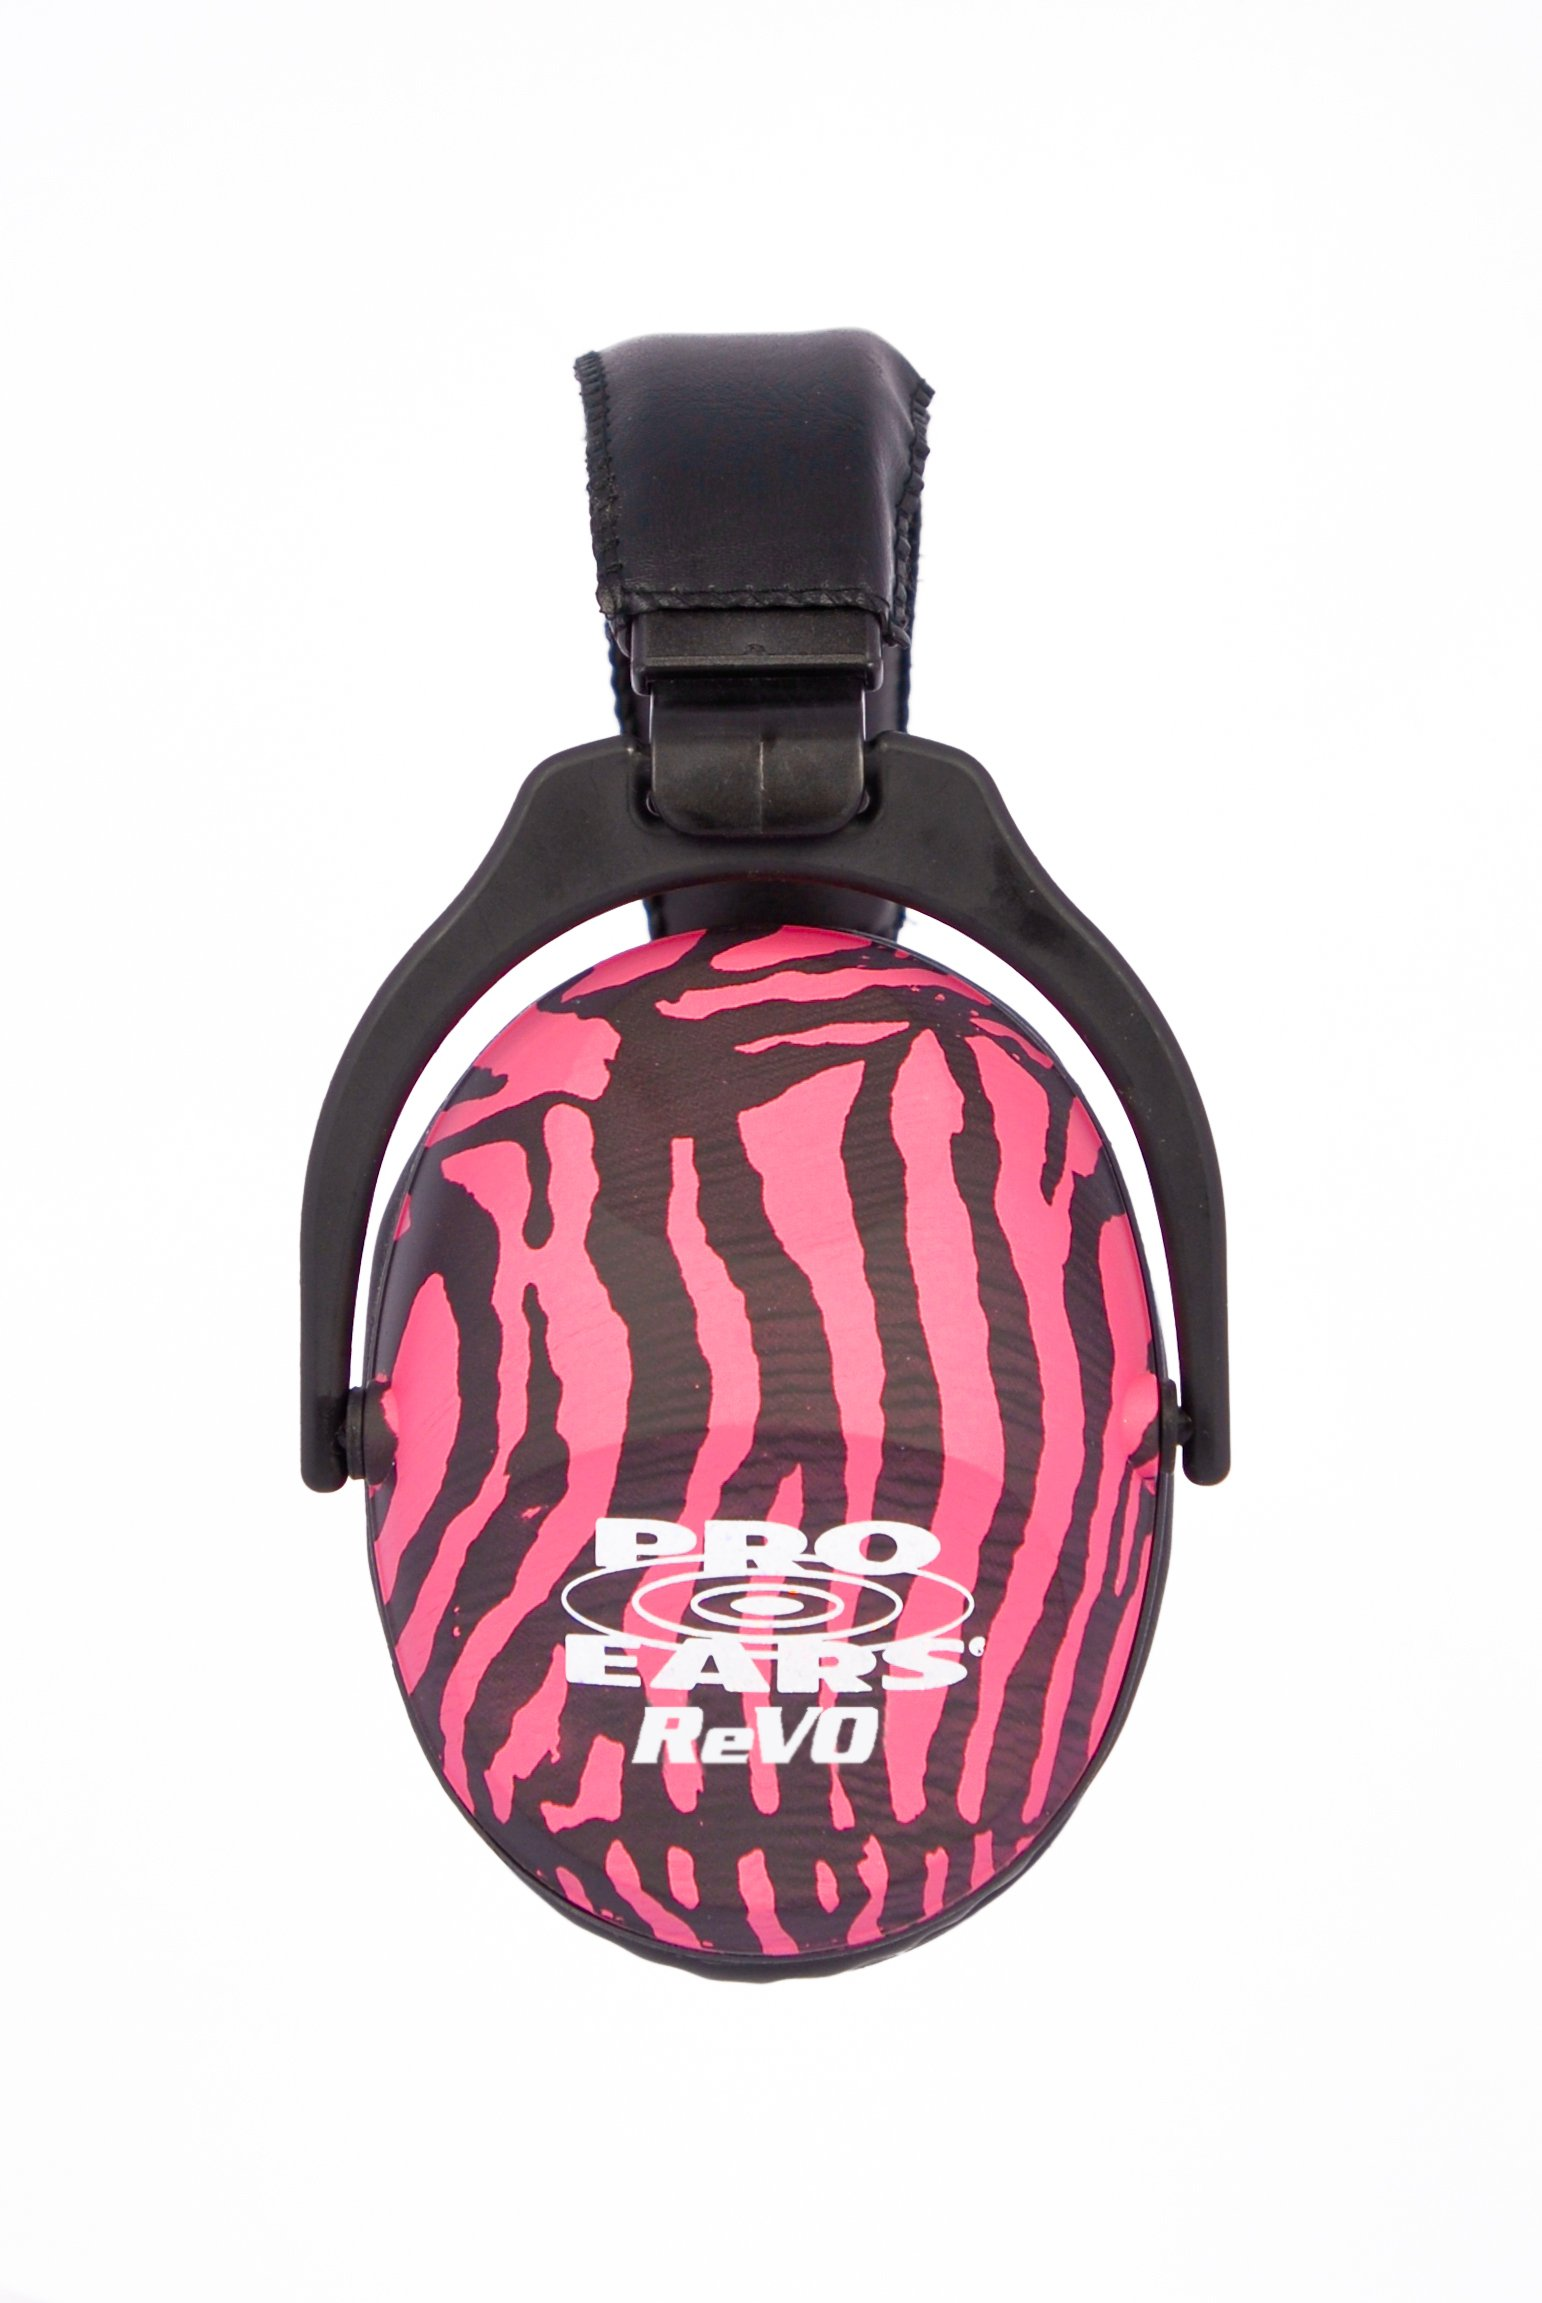 Pro Ears - ReVO - Hearing Protection - NRR 25 - Youth and Women Ear Muffs - Pink Zebra by Pro Ears (Image #2)